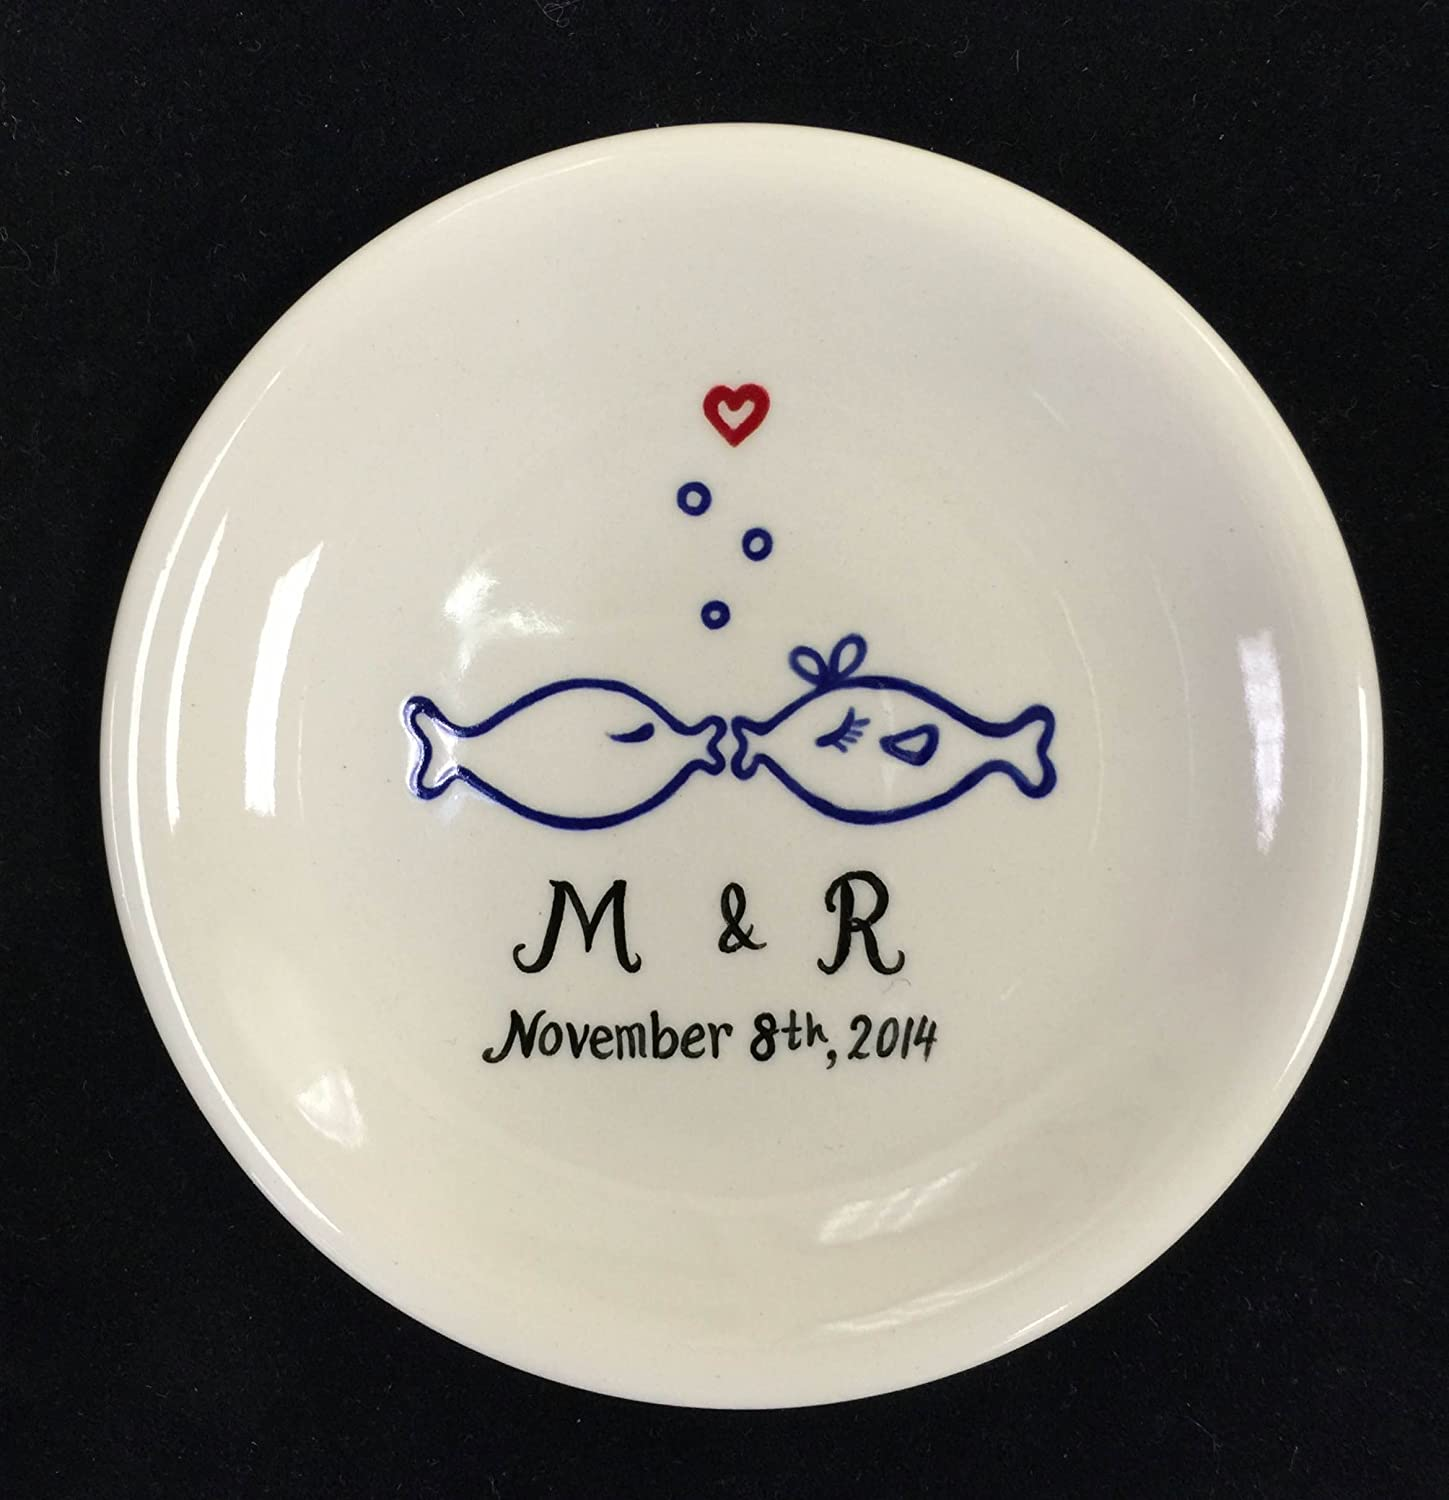 kissing fishes Ring dish, Engagement gift, Wedding gift , Holiday gift, ring holder